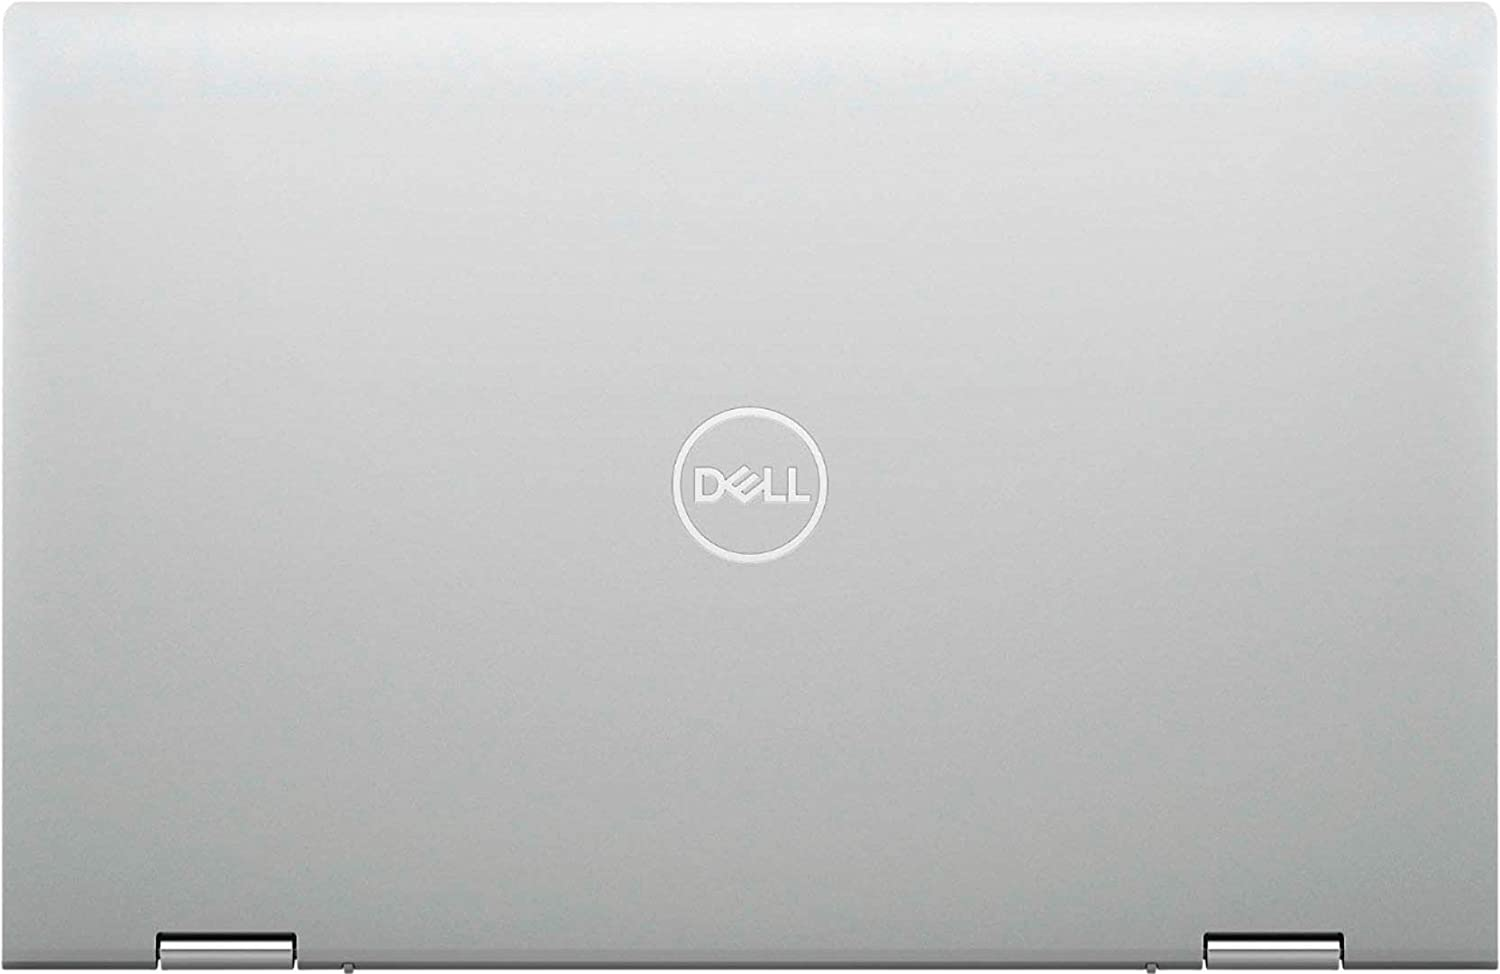 Dell Inspiron 13 7300 2-in-1 Touchscreen Laptop - 13.3